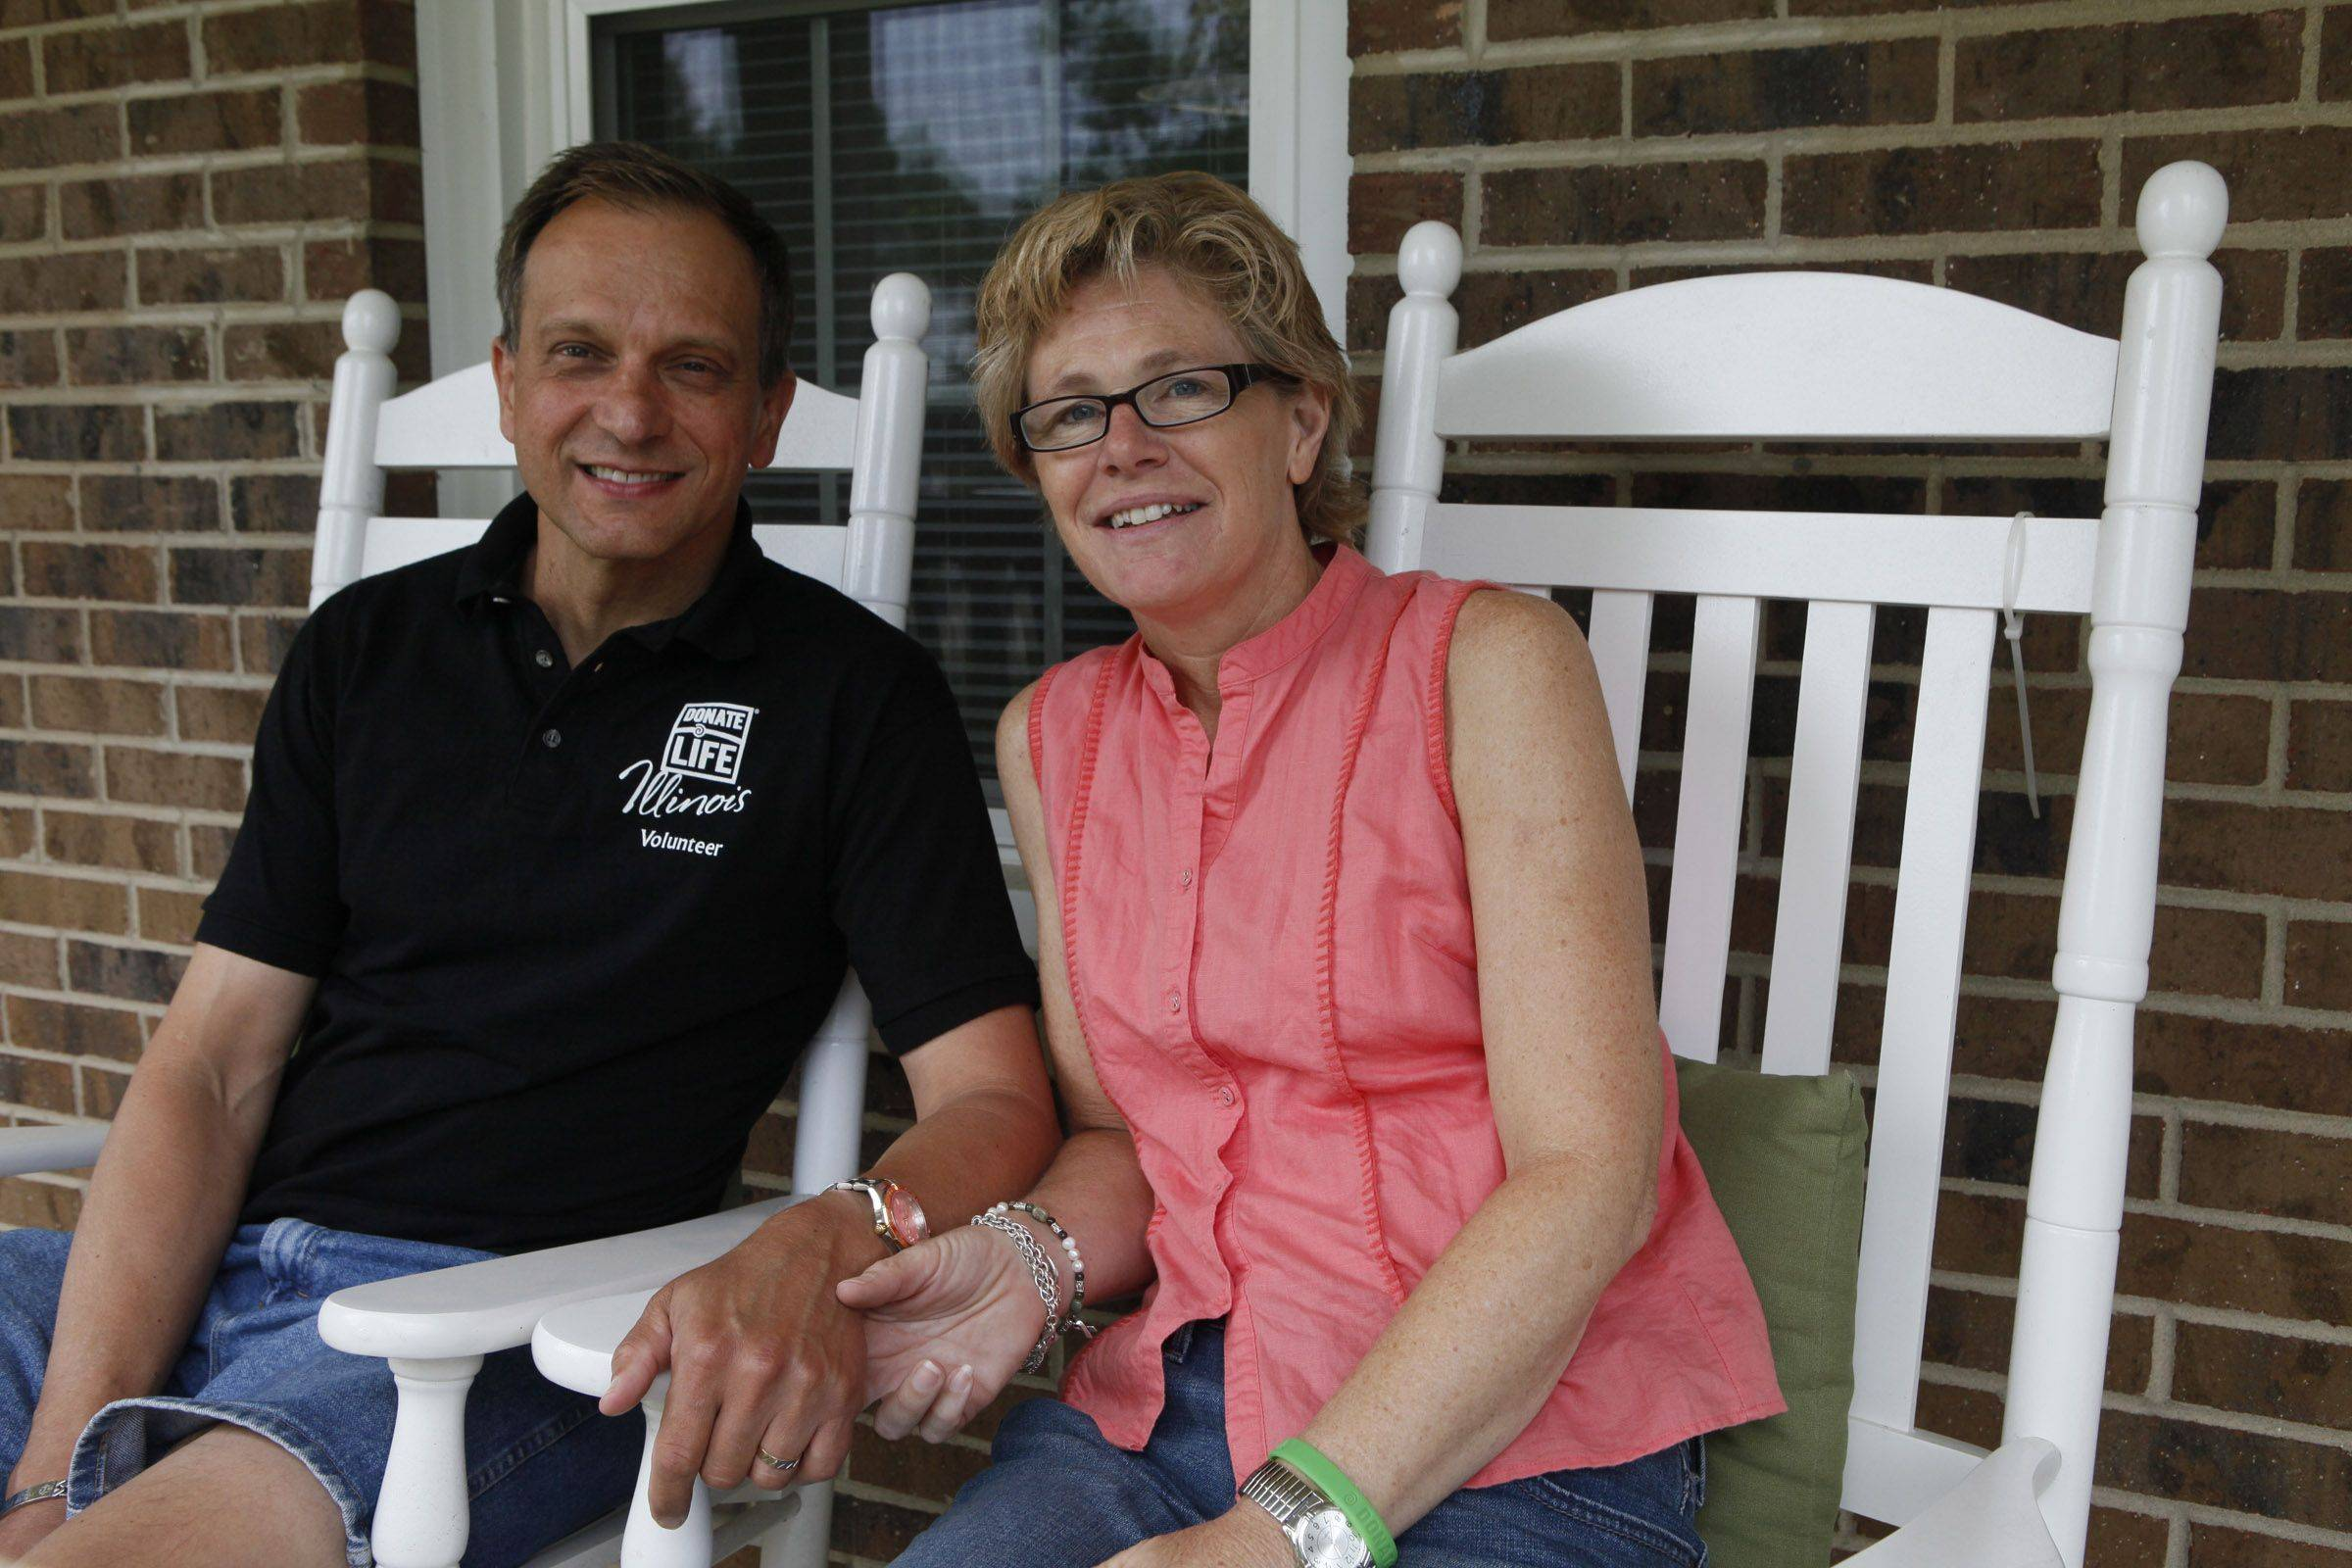 Rick Majewski/rmajewski@dailyherald.com Kevin Lue's and his wife Maureen Lue's on their front porch in Bartlett. They met through their passion for running, which both of them still do even after Kevin's heart transplant surgery two years ago.  Friday July 1, 2011